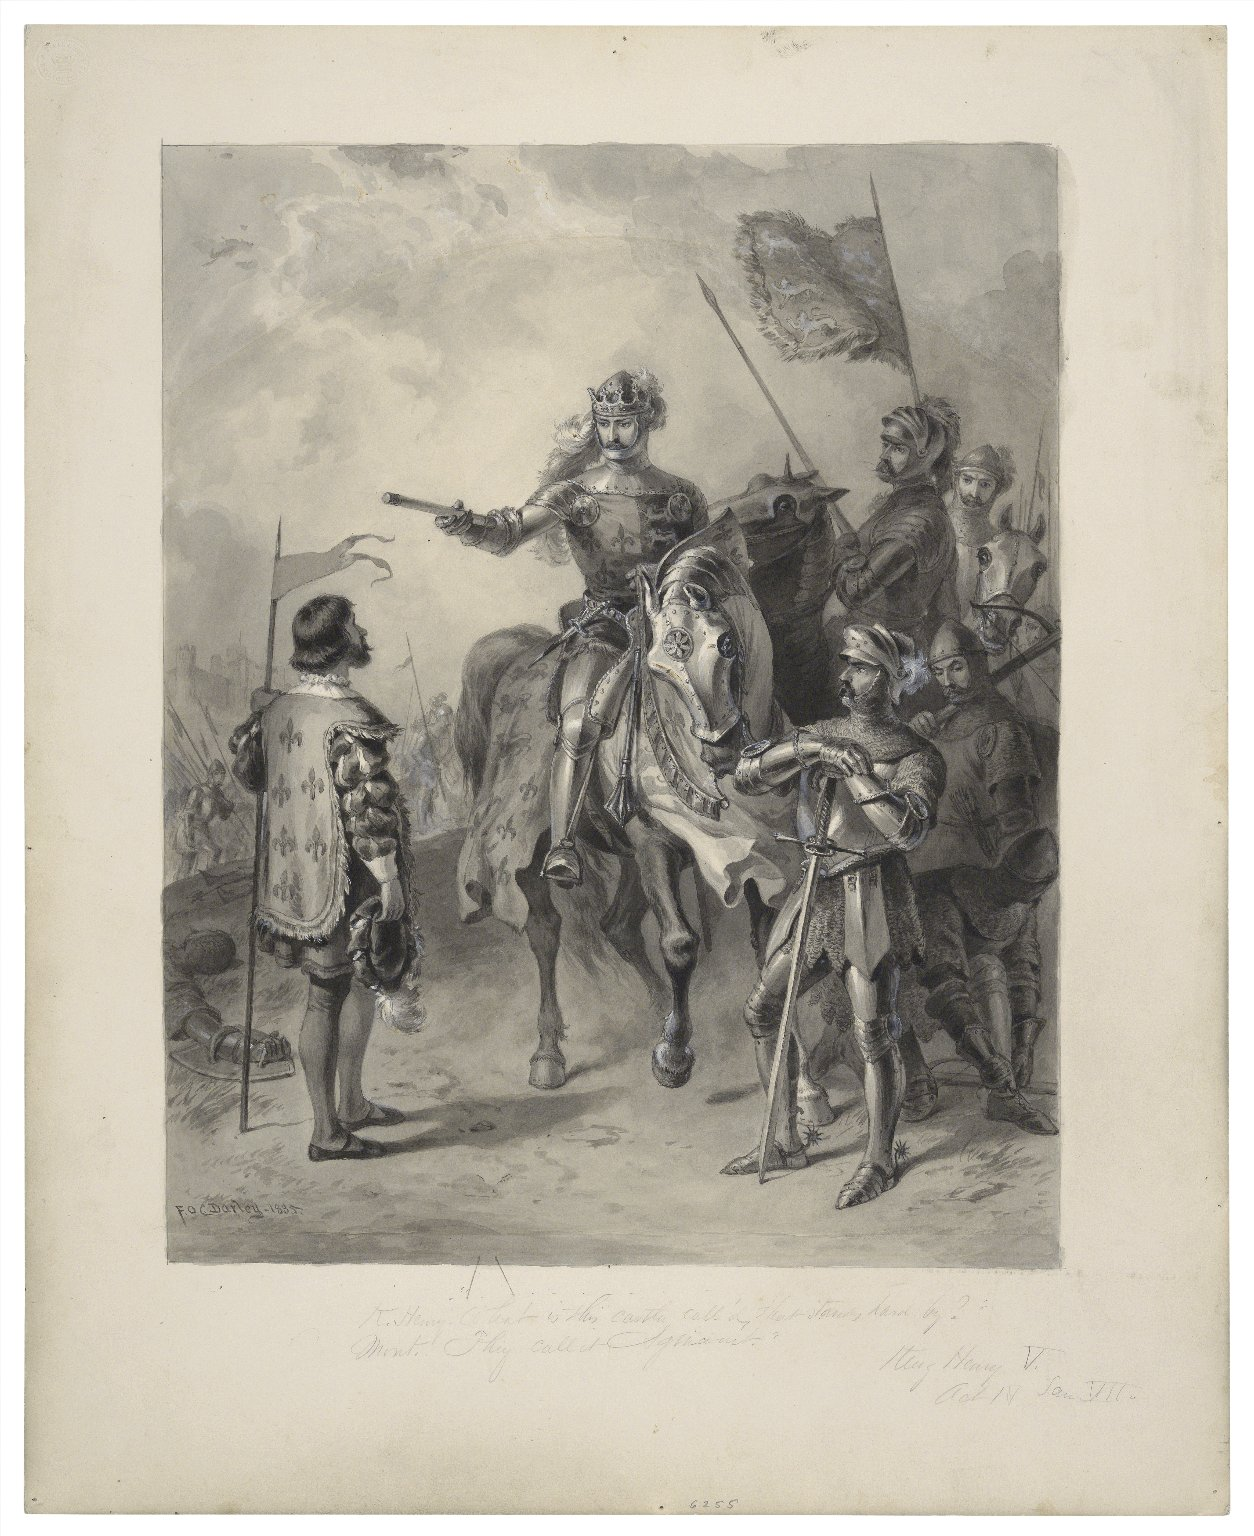 """K. Henry. """"What is this castle call'd that stands hard by?"""" Mont. """"They call it Agincourt"""", King Henry V, act IV, scene VII [graphic] / F.O.C. Darley, 1885."""